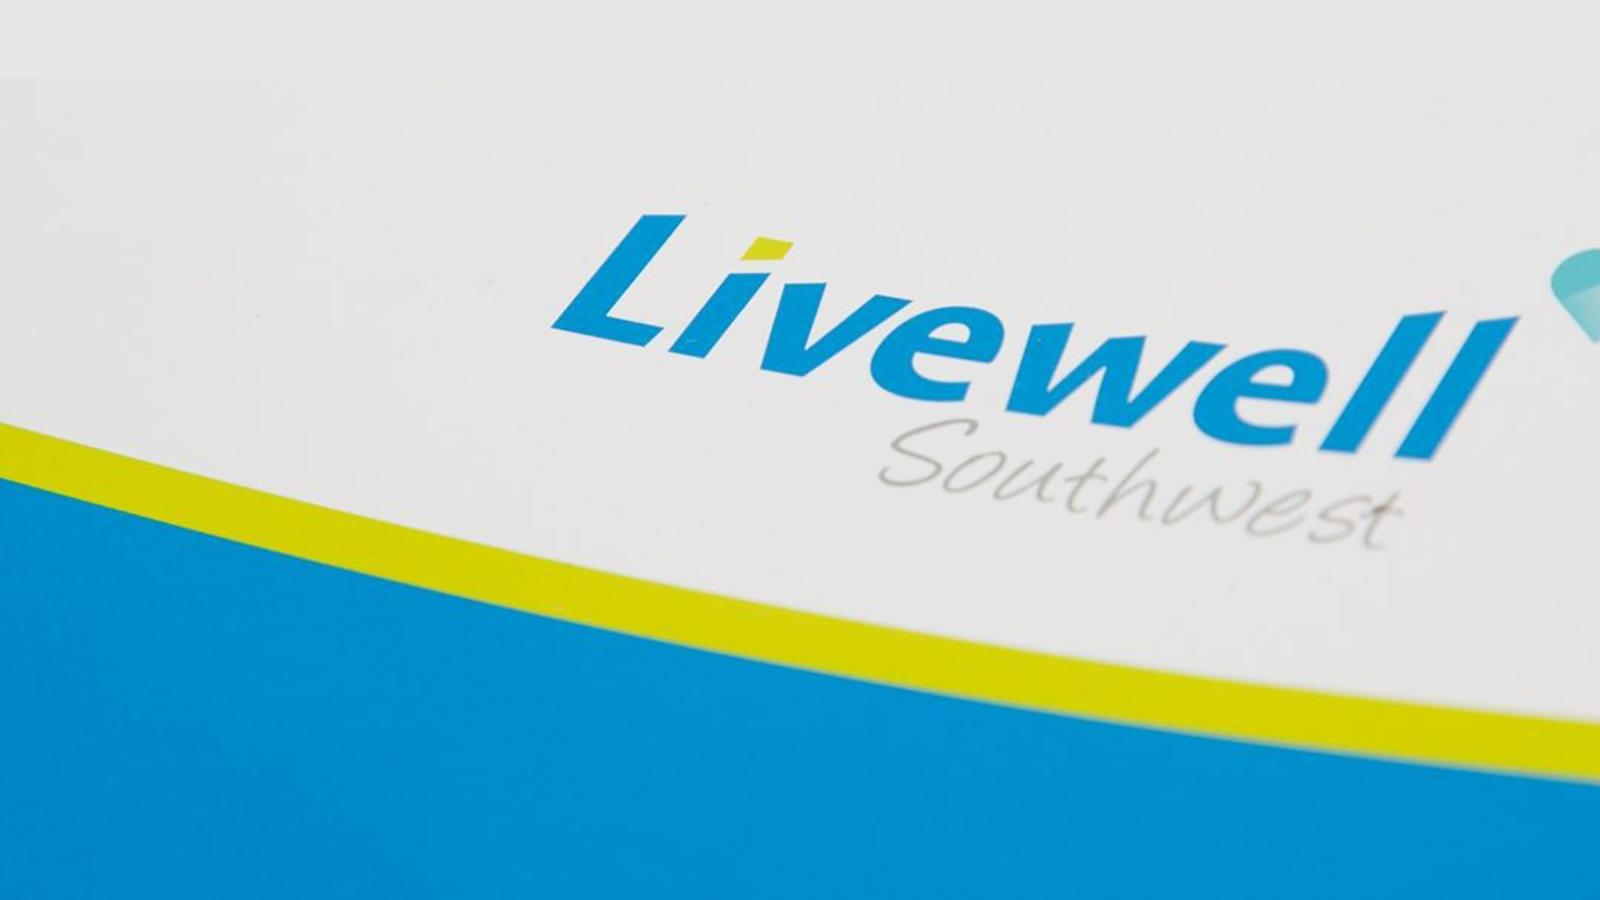 Livewell Mental Health support